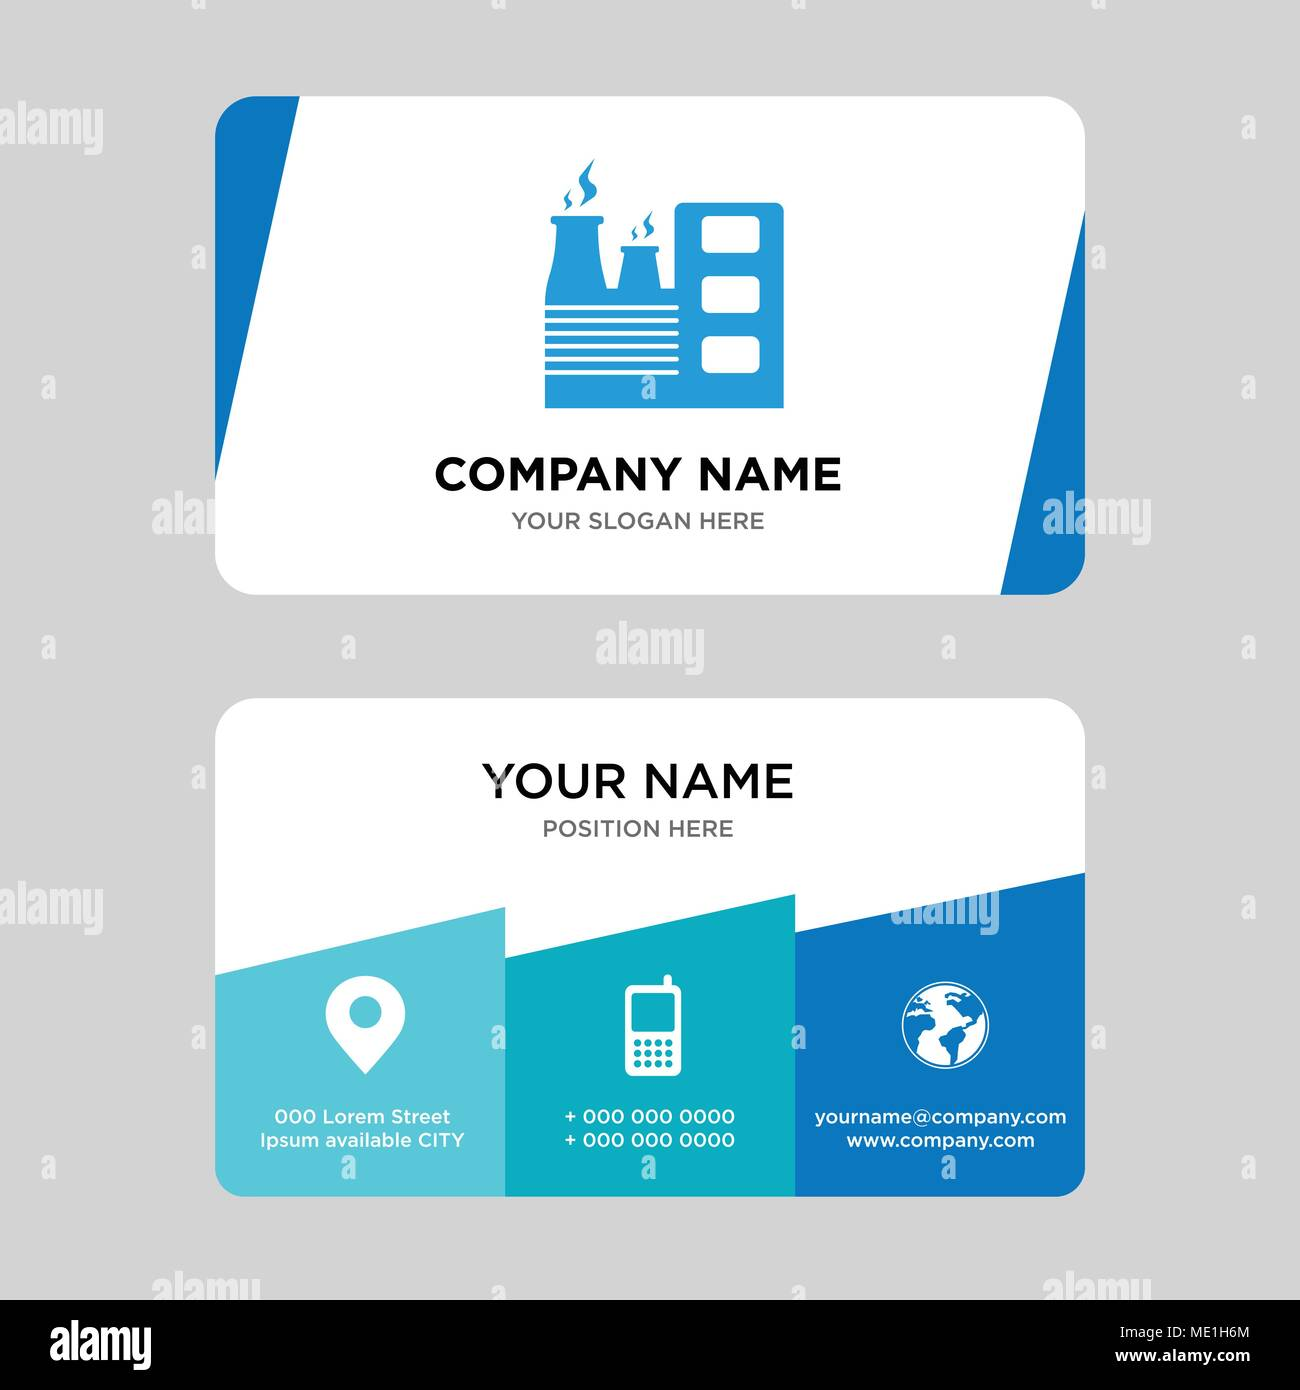 factory business card design template, Visiting for your company ...